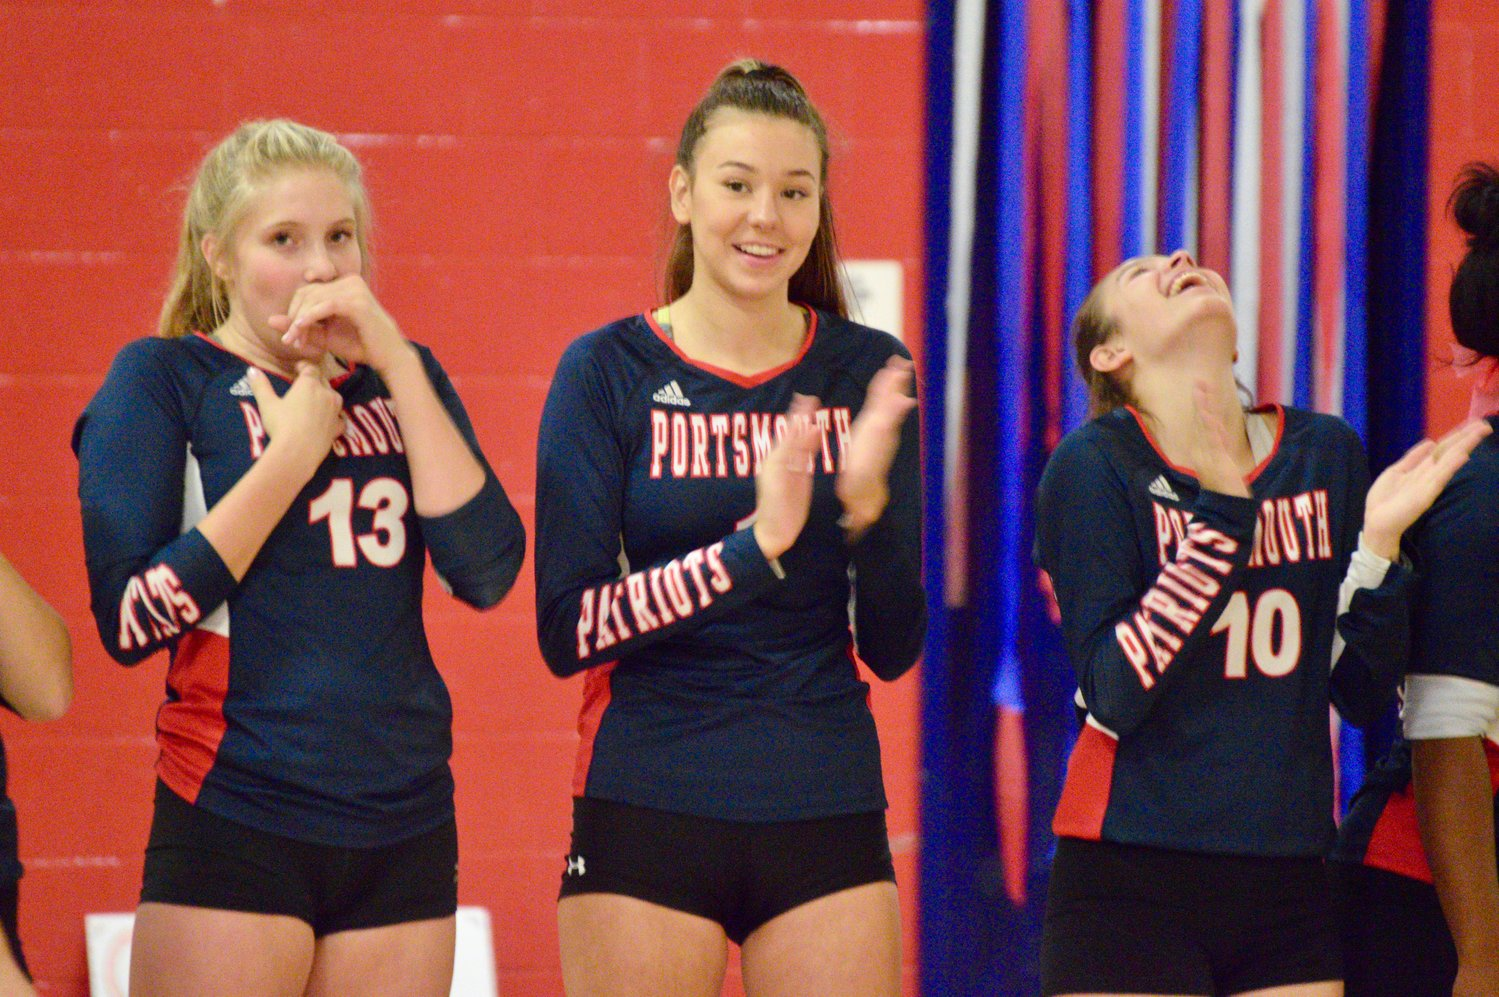 Tatum Horley, Morgan Shablom and Julia Durant (from left) applaud during the introductions Monday night.